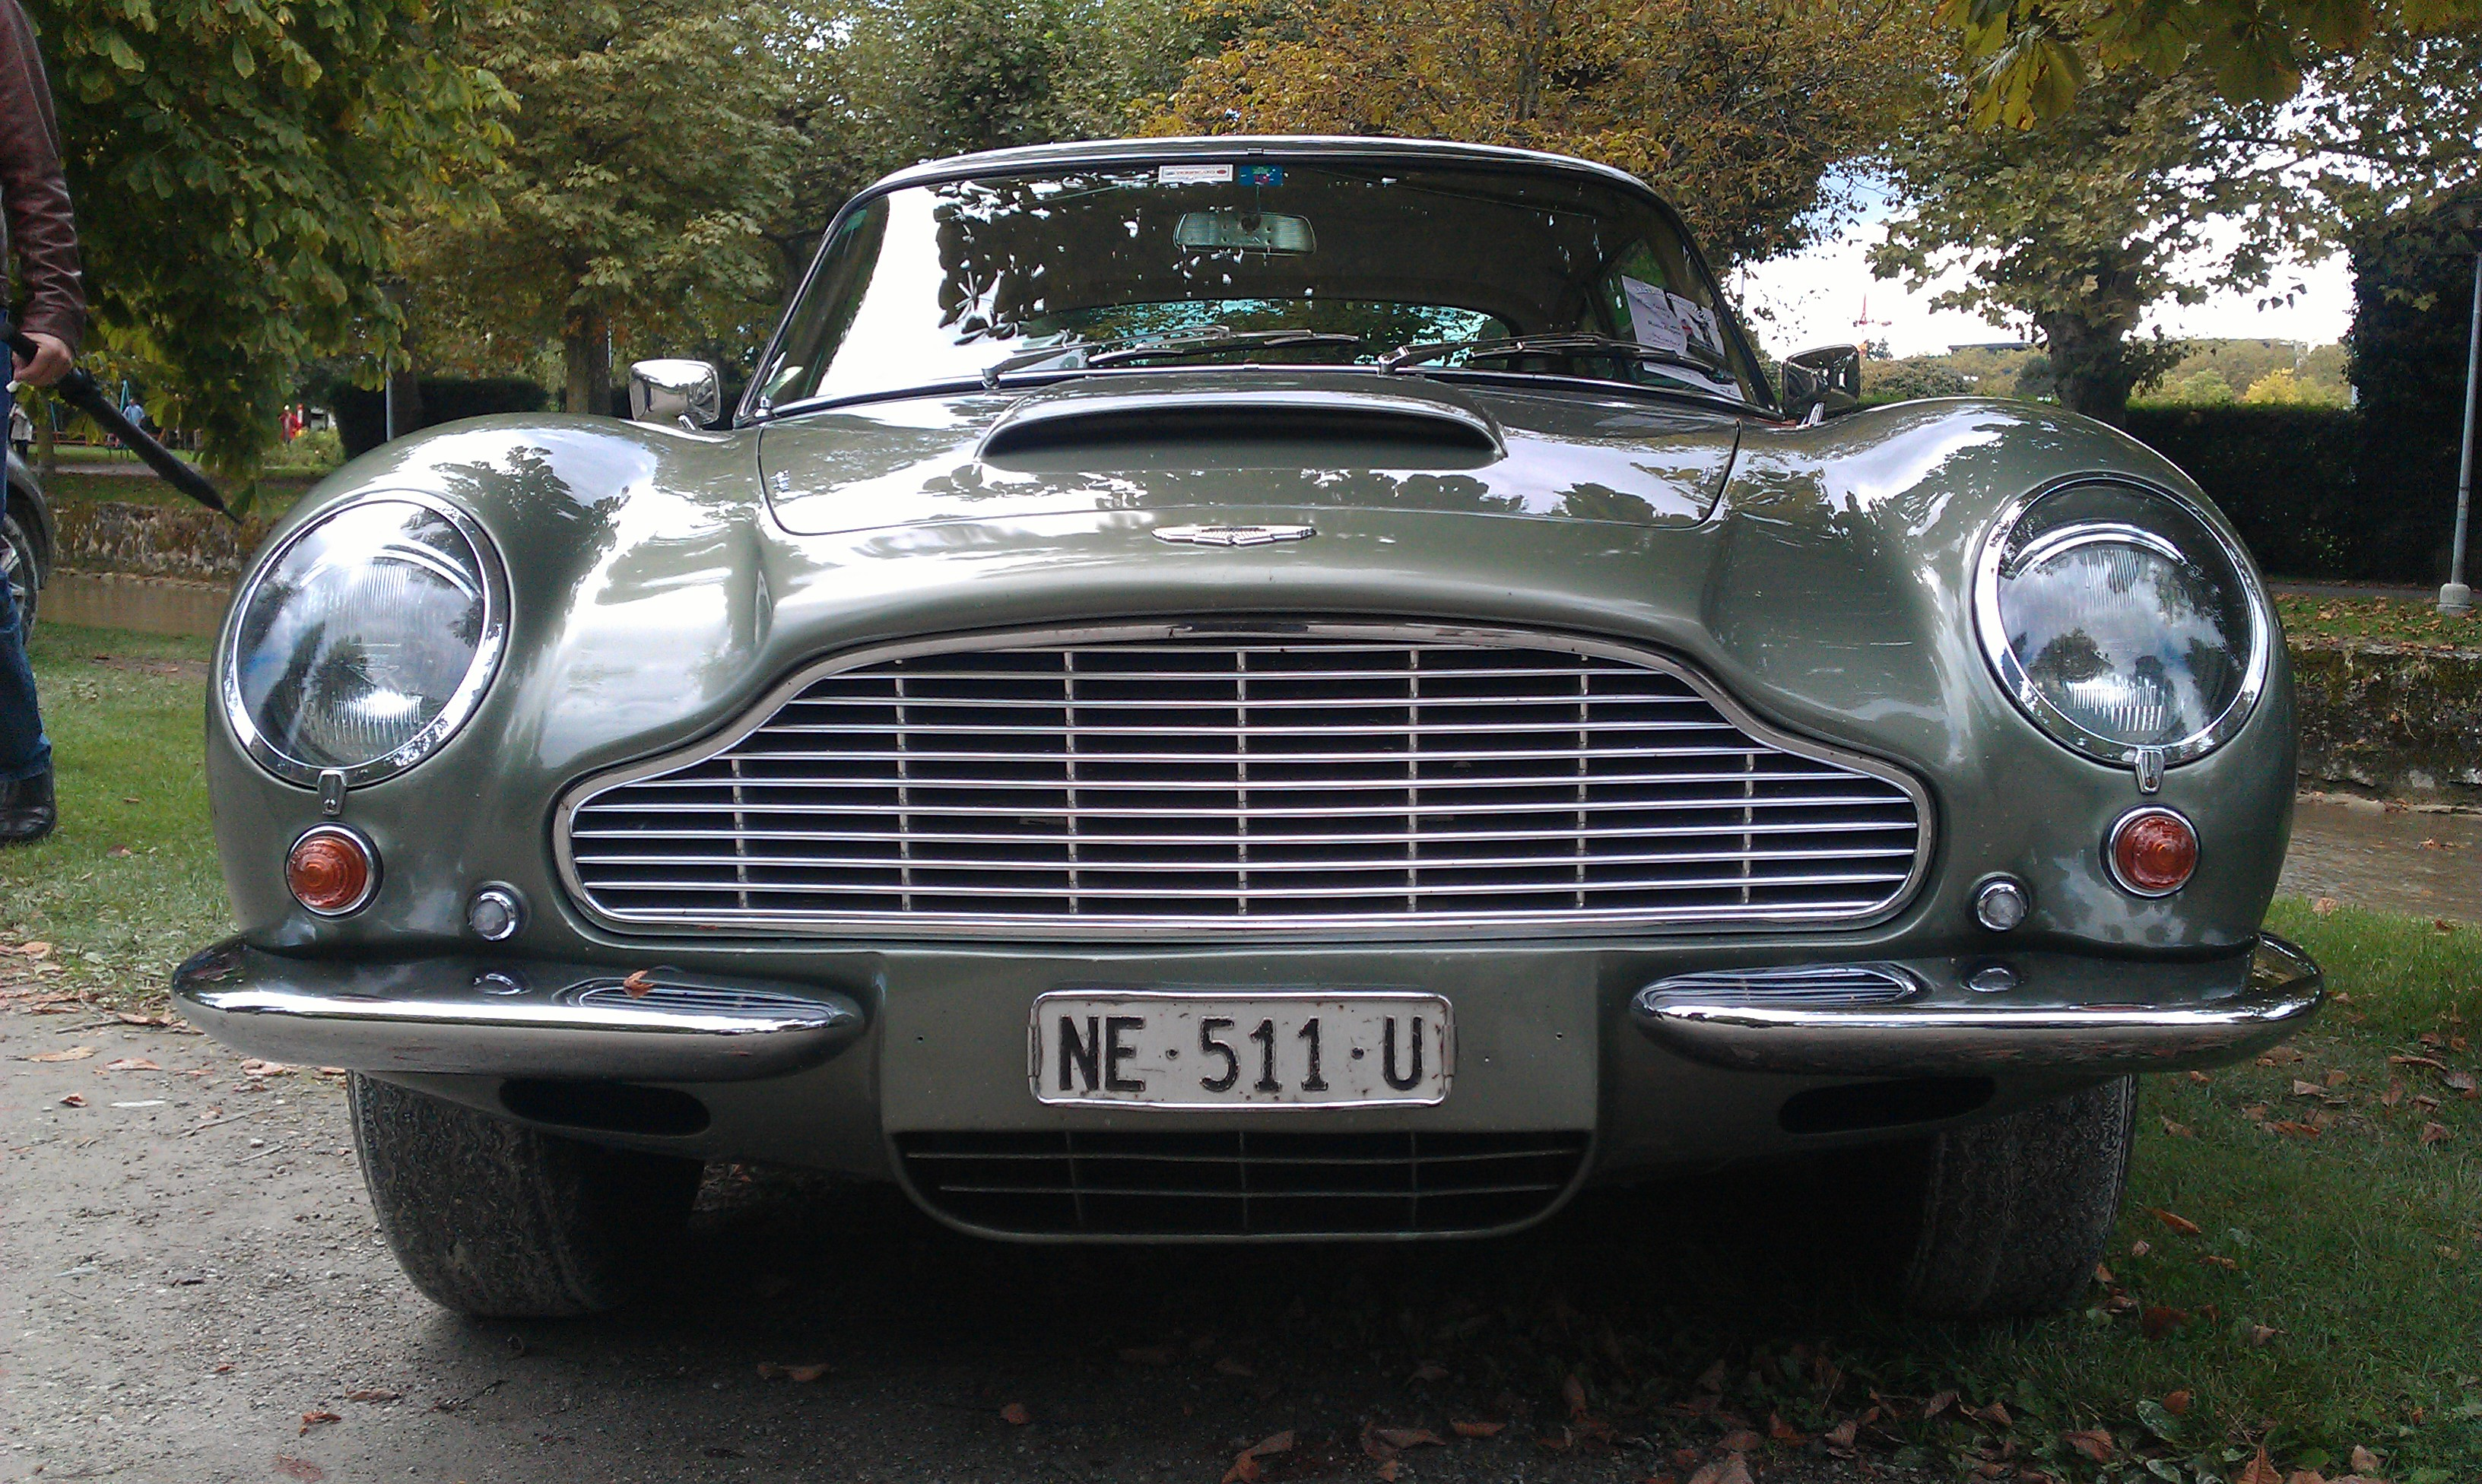 file:1966 aston martin db6 vantage in morges 2013 - front